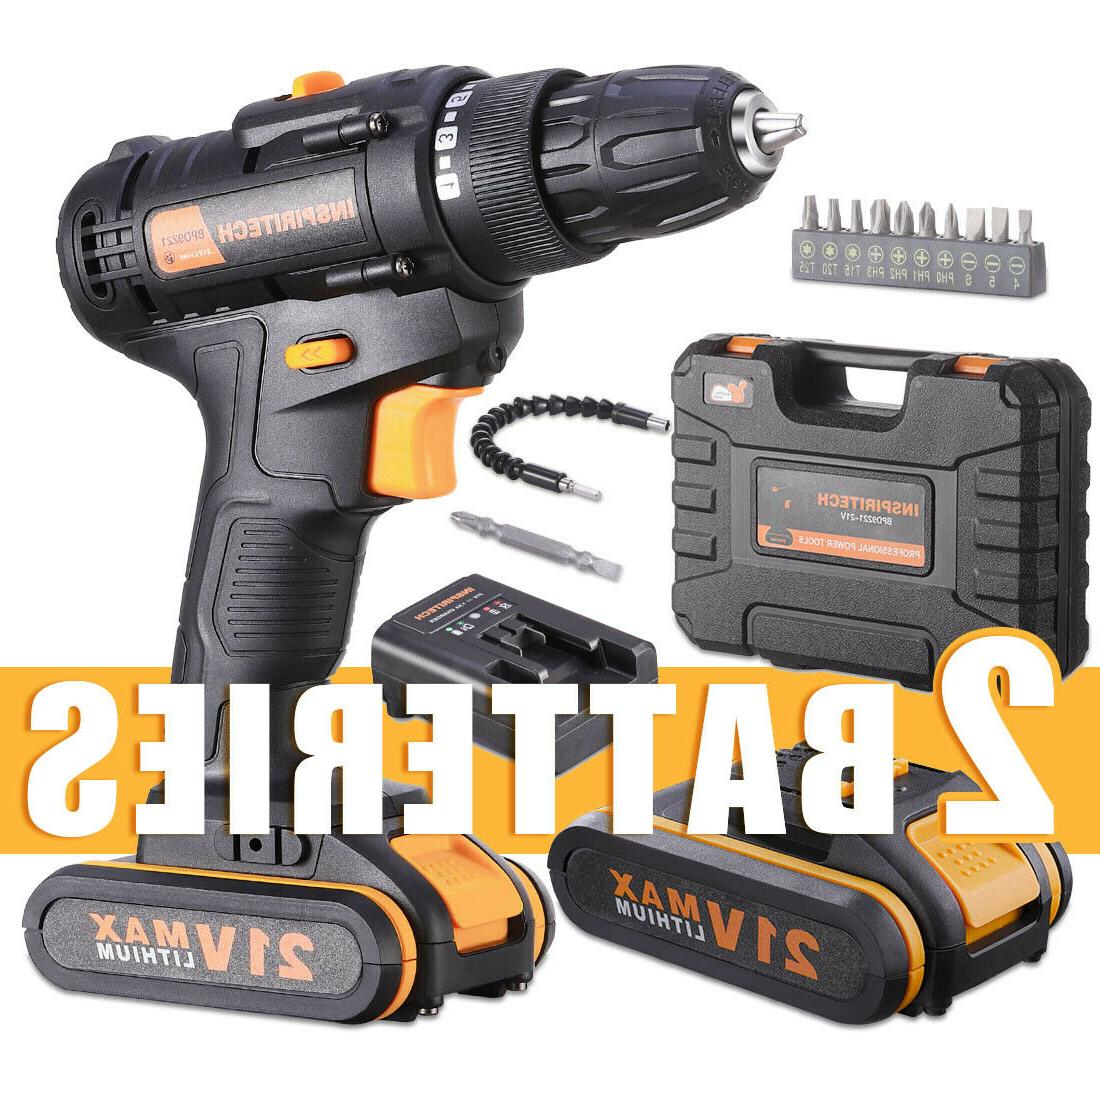 21 v drill 2 speed electric cordless